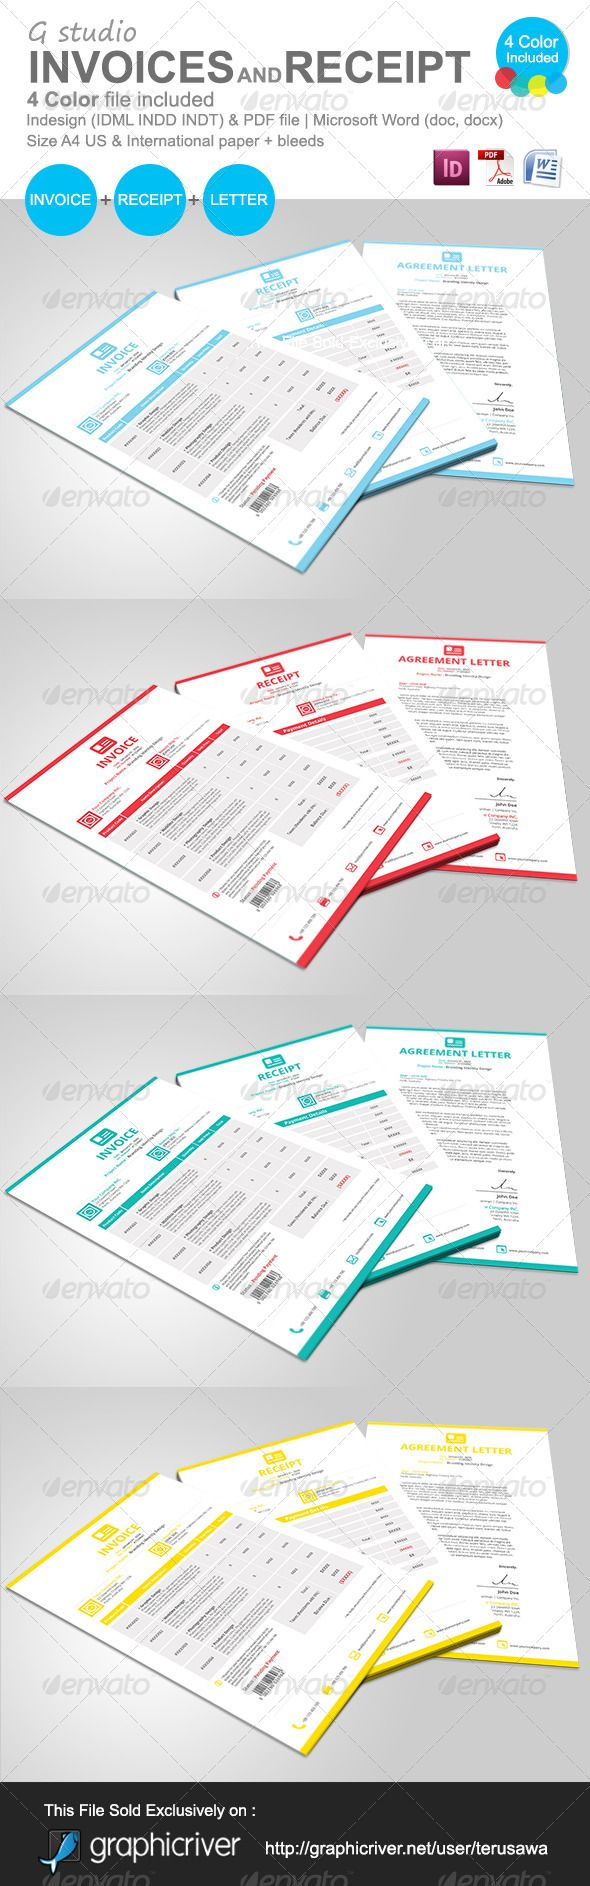 What Is The Difference Between Msrp And Invoice Price Generic Invoice Template  Corporate Design Fonts And Letterhead Invoice Due Date Calculator with How To Find Vehicle Invoice Price Excel  Invoice Template Free Download Excel